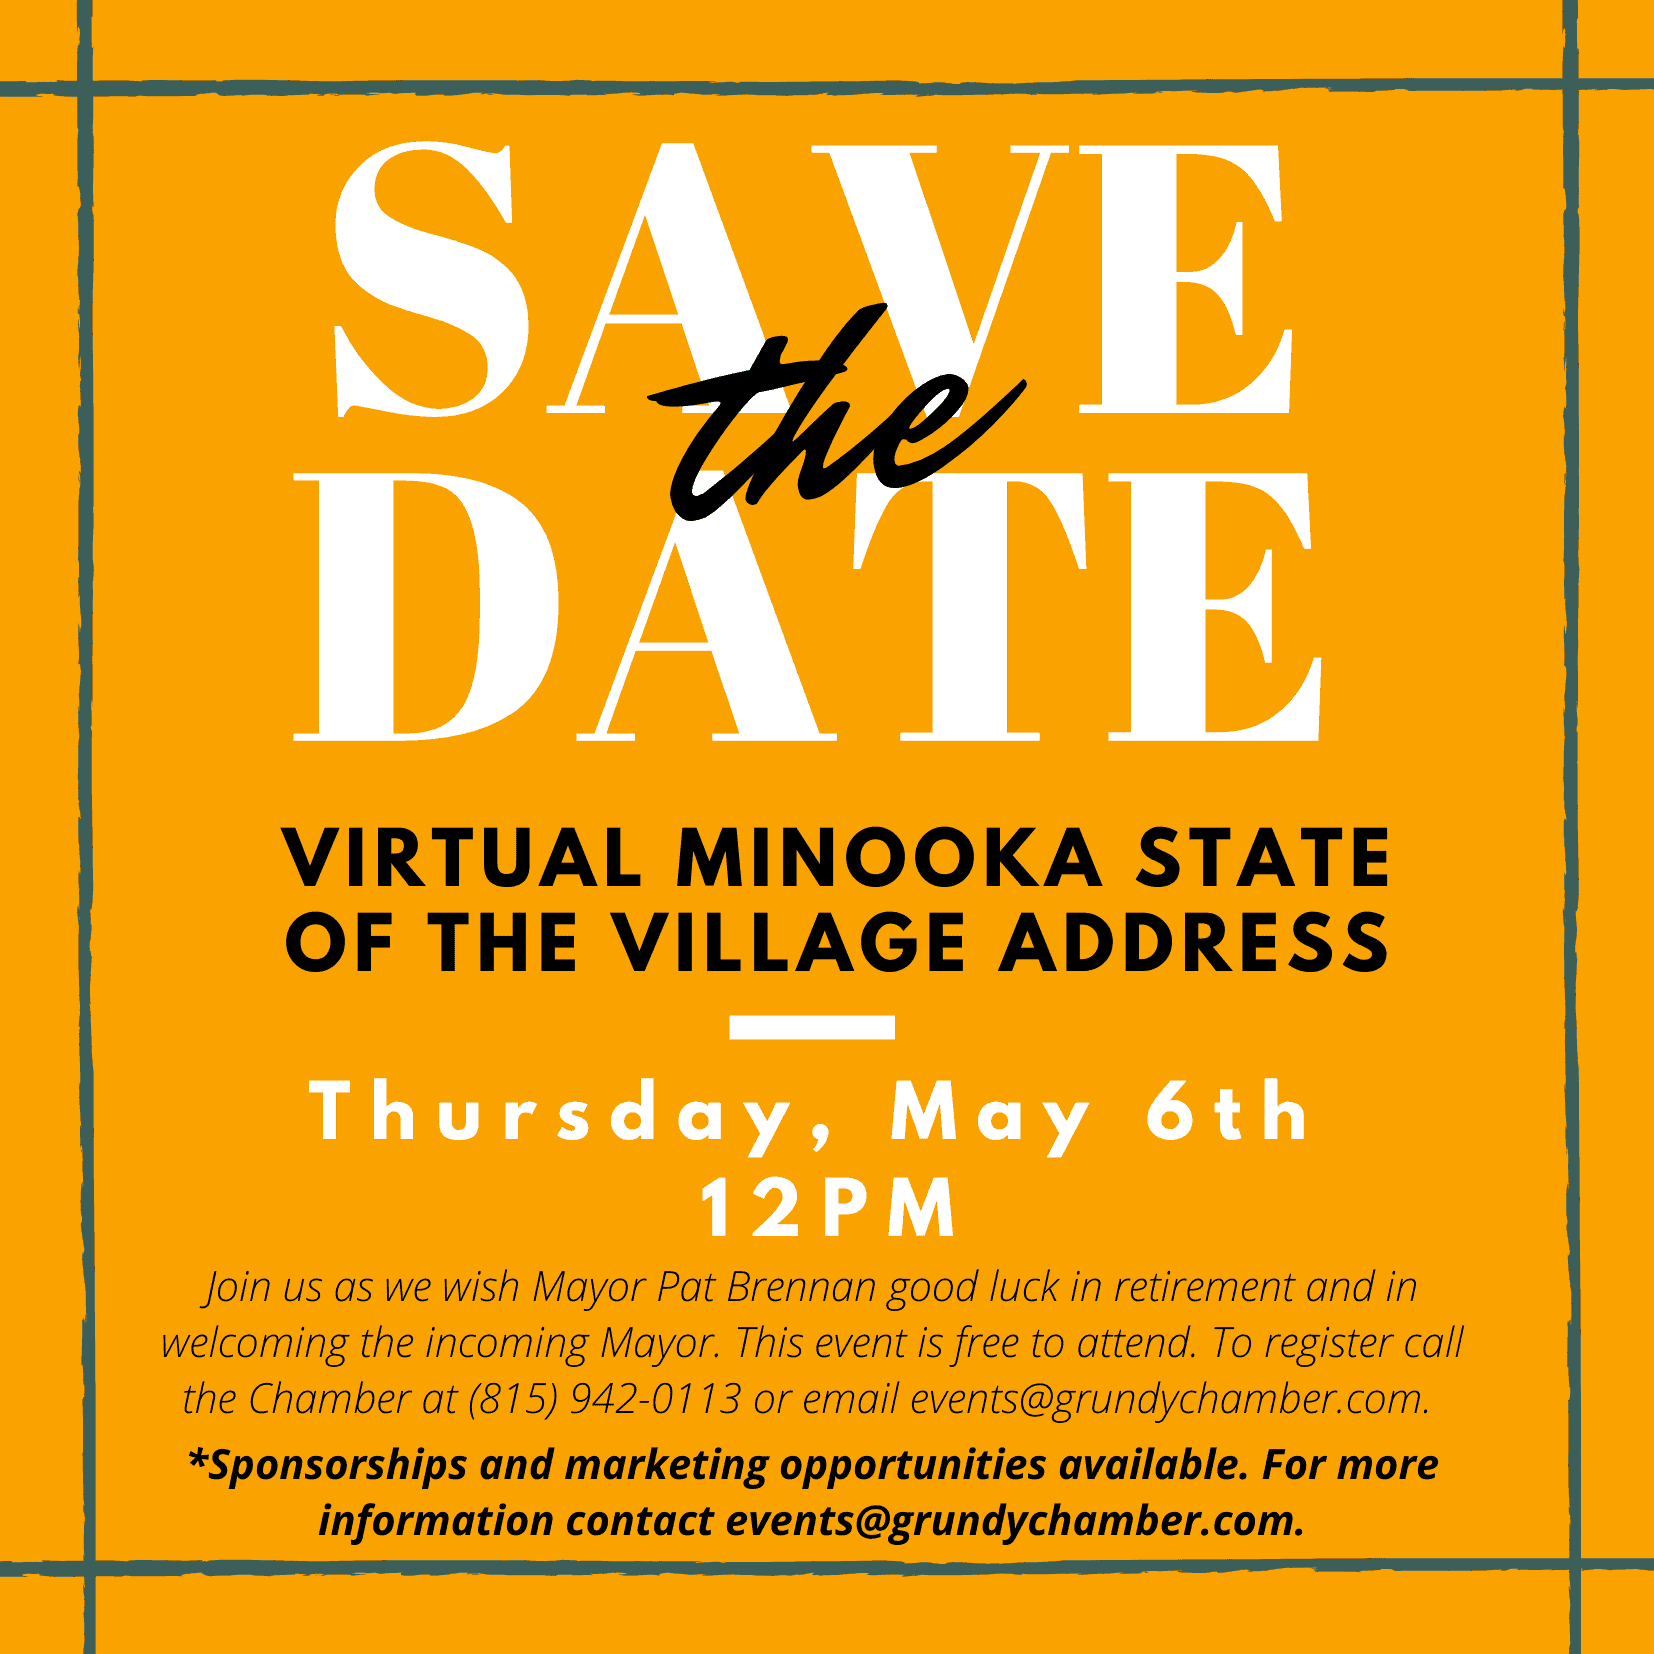 Virtual Minooka state of the village